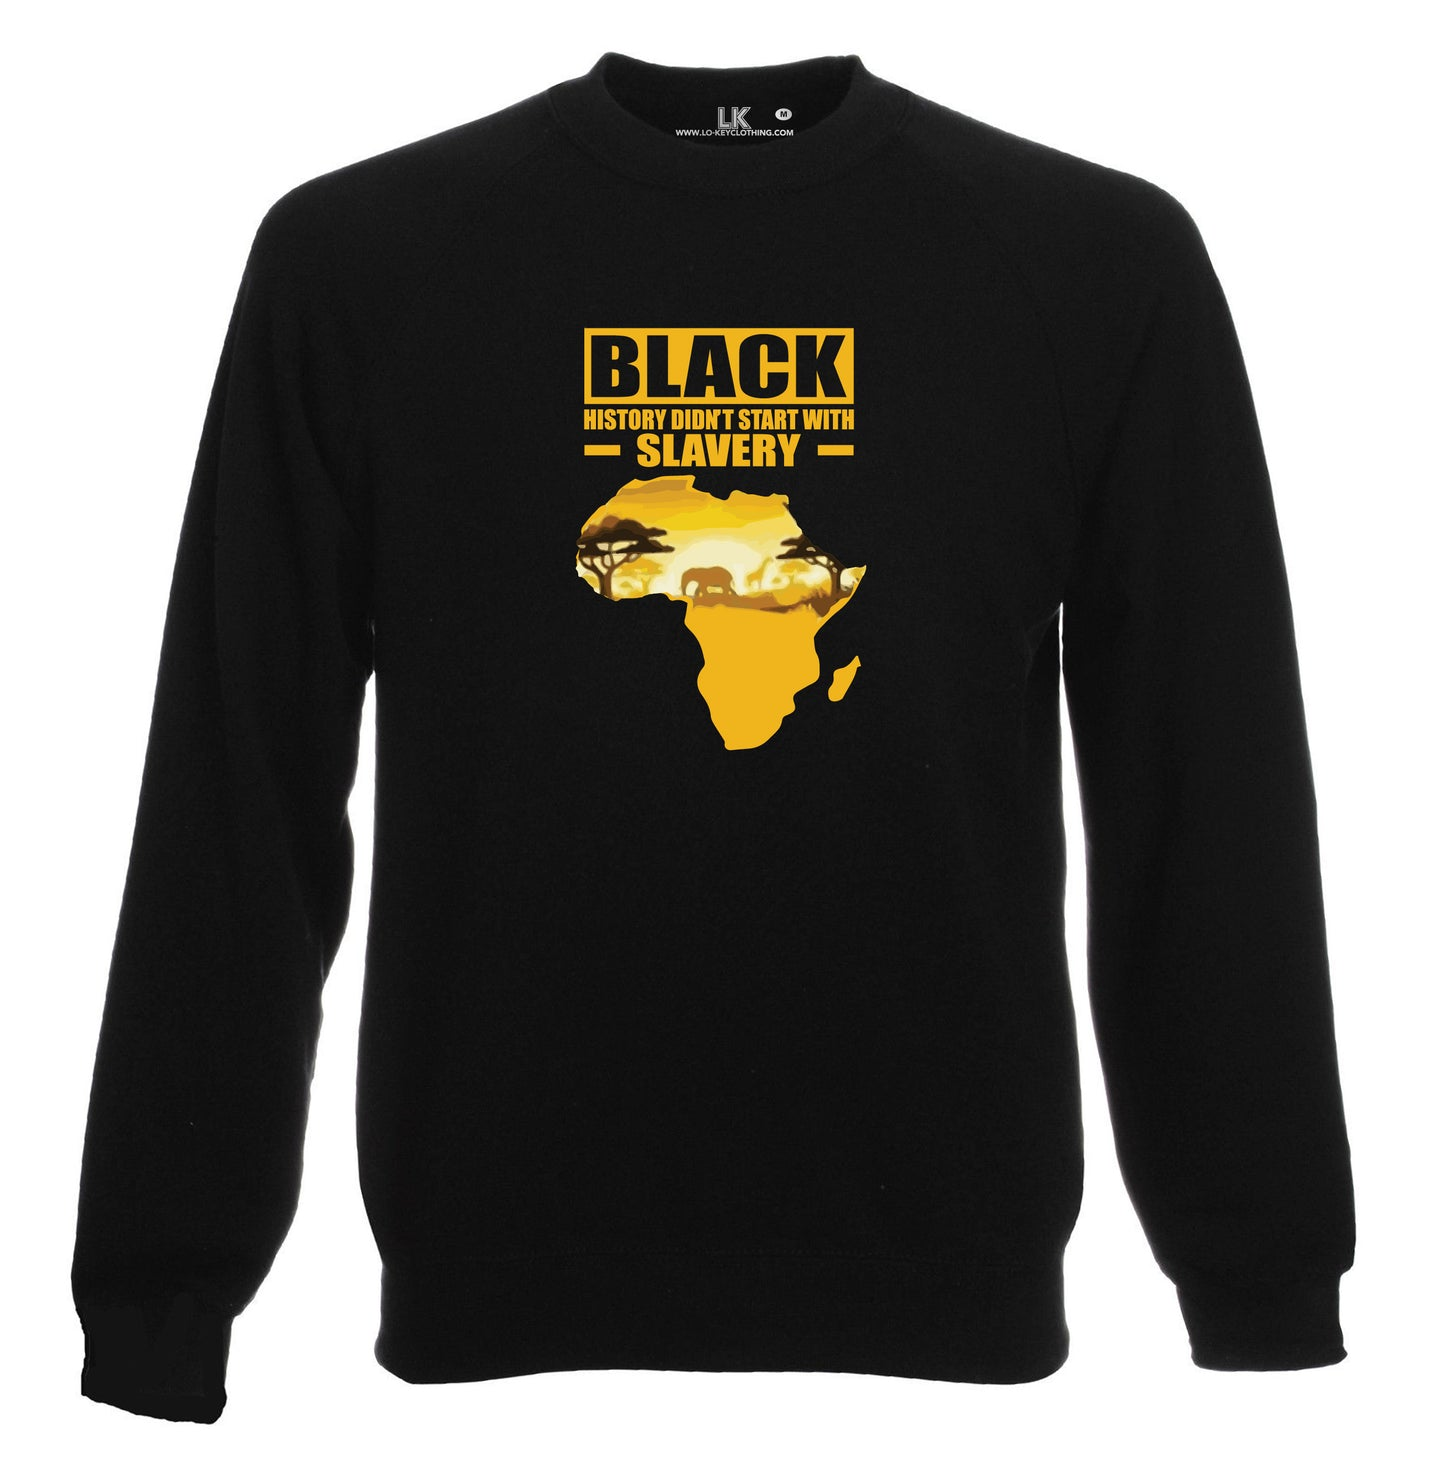 Black History Didn't Start With Slavery Sweatshirt